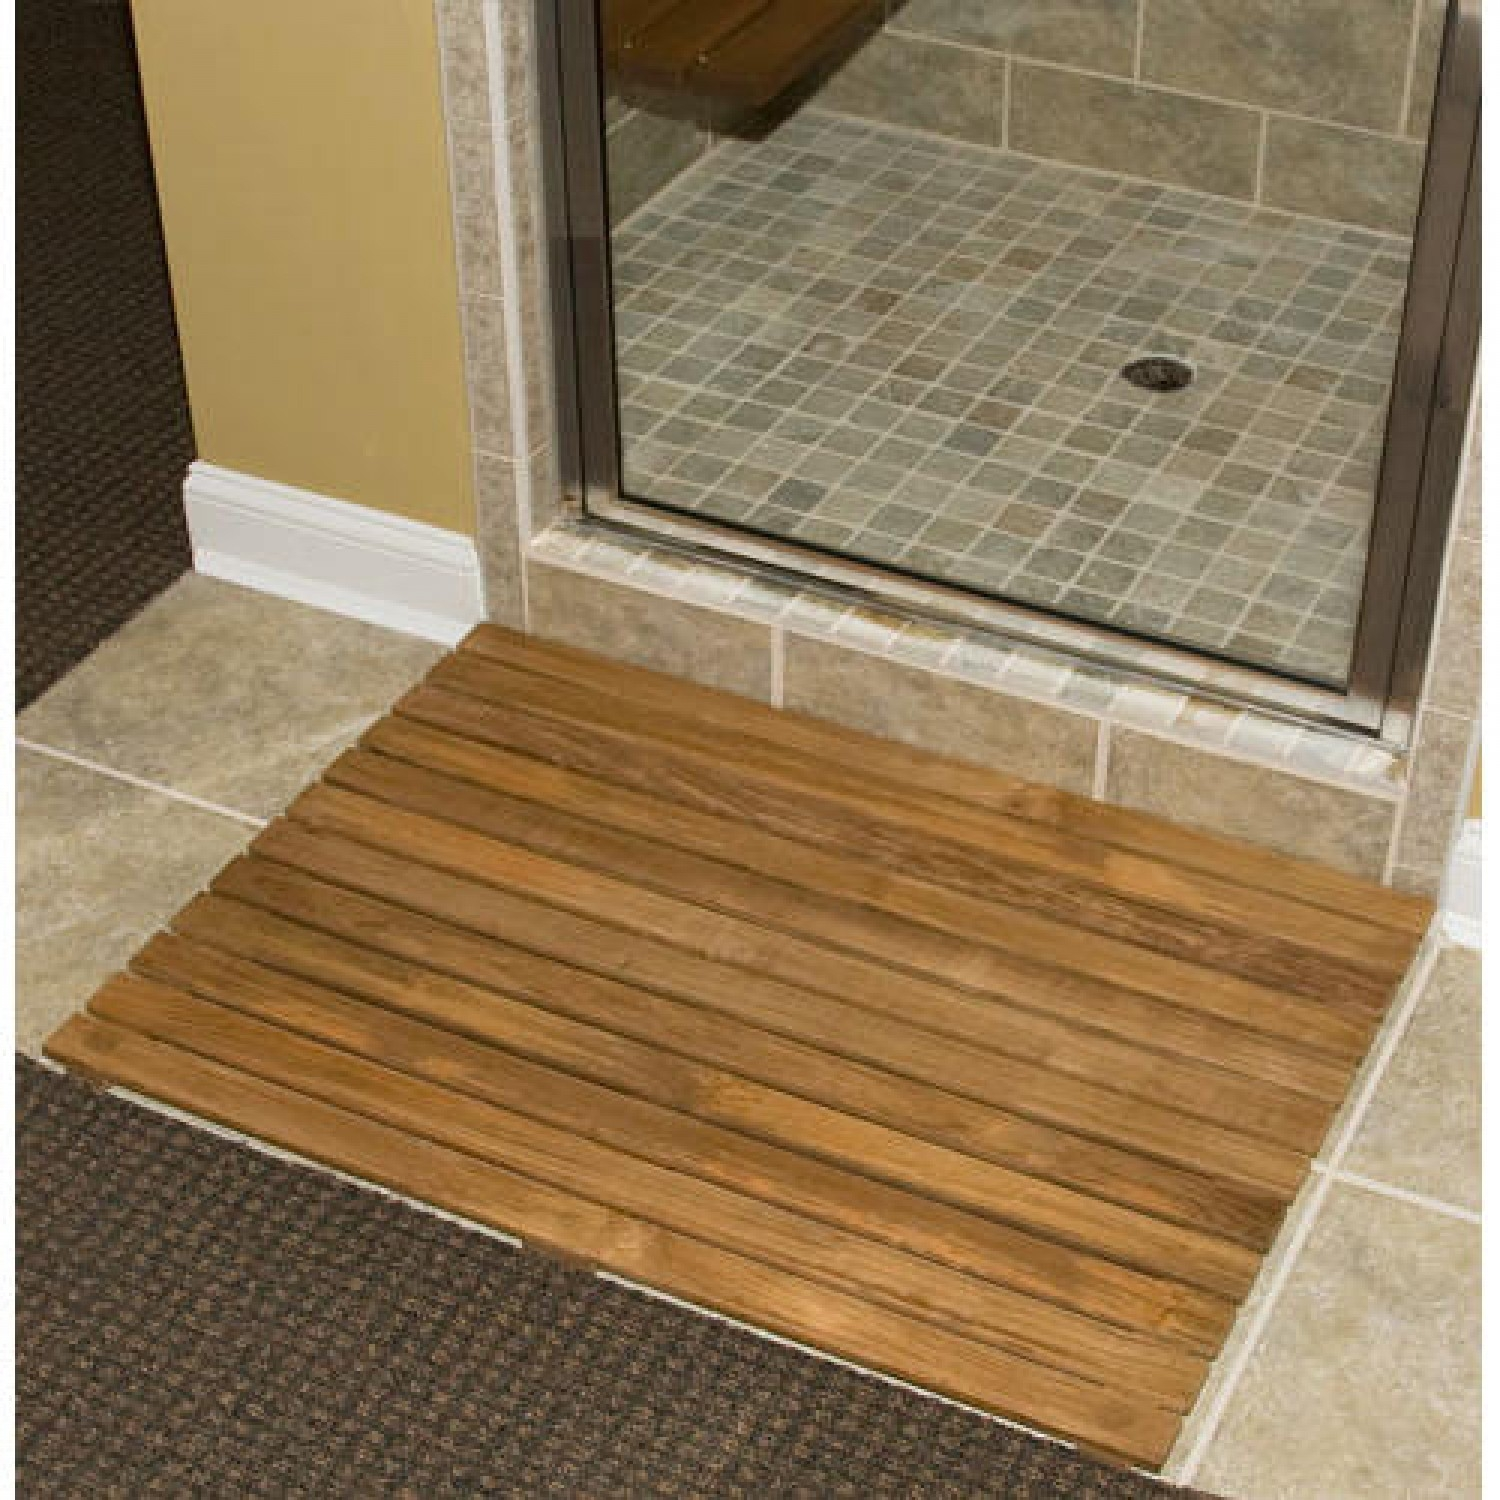 Lowes Wood Bath Mat